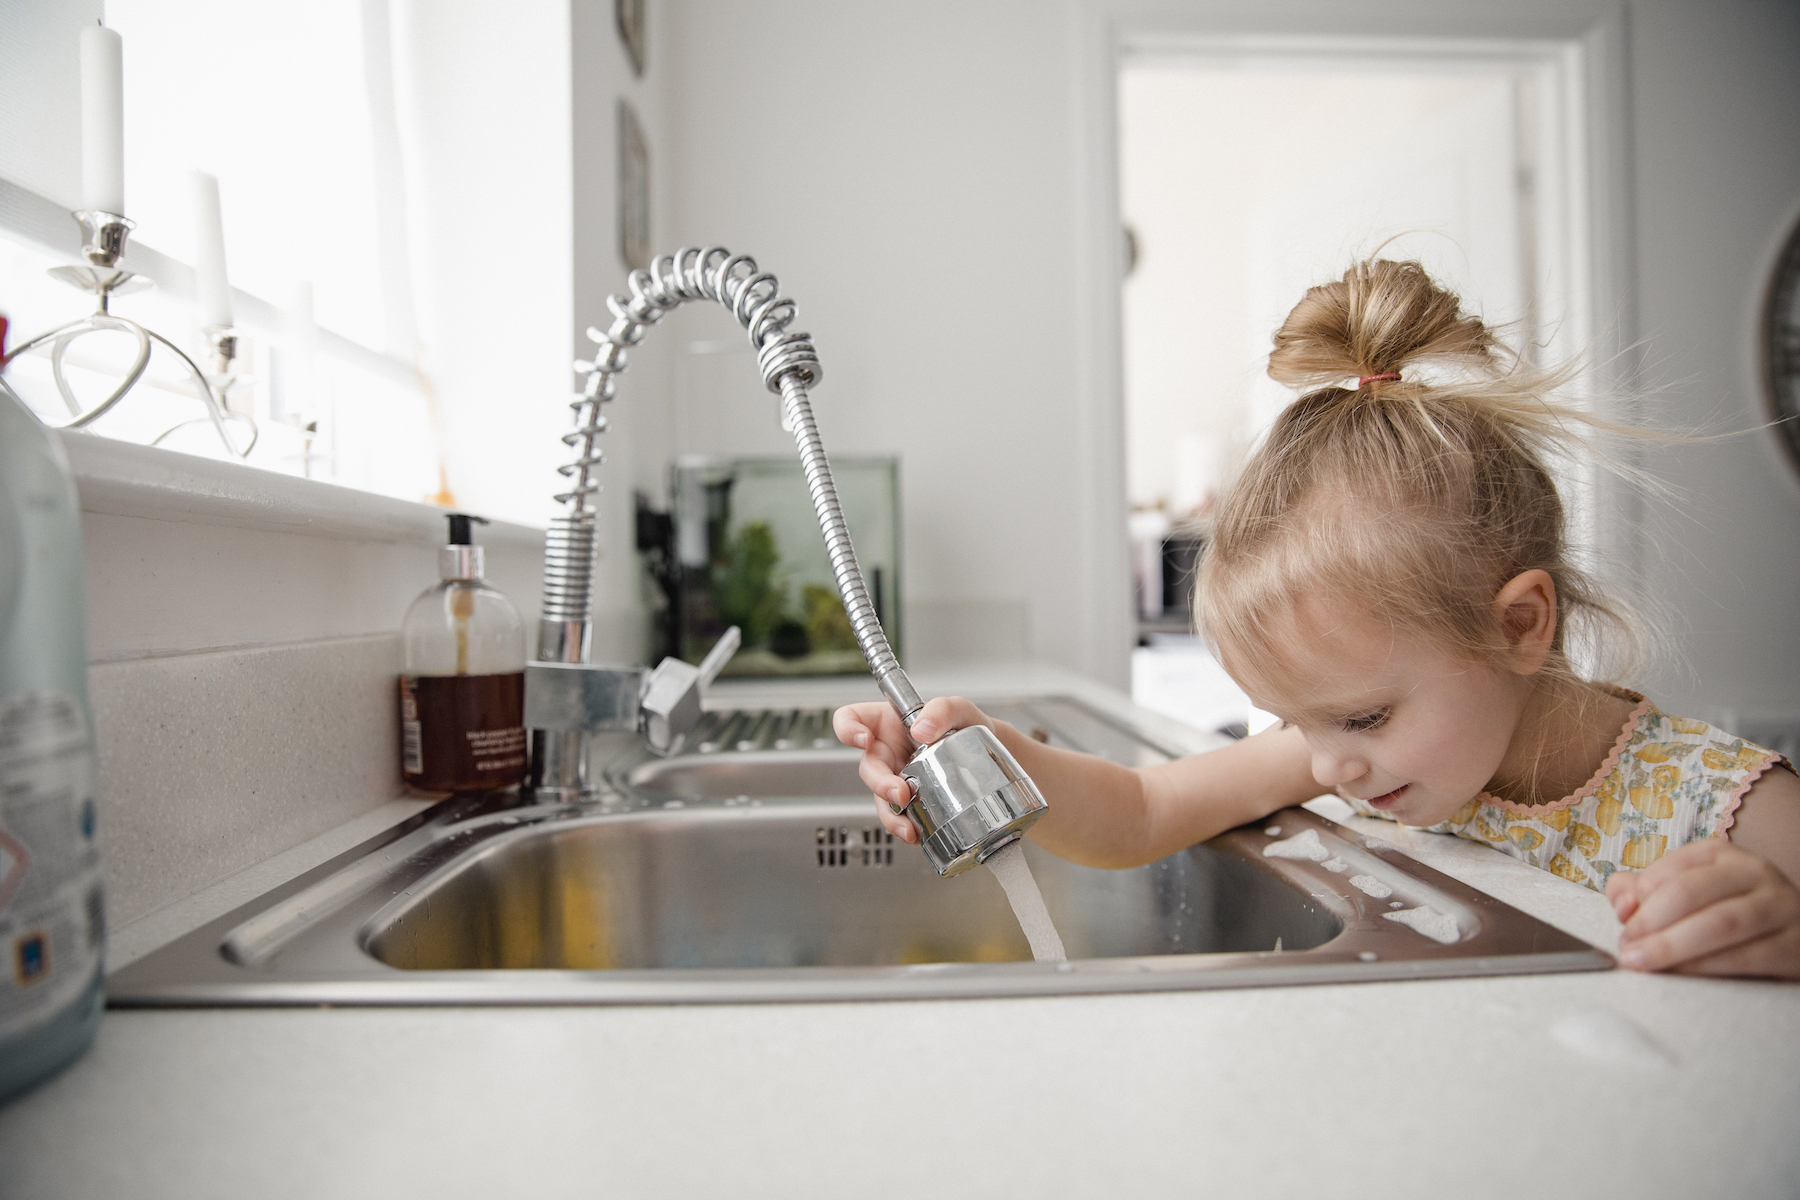 How to Clean Stainless Steel Sink, little girl at kitchen sink